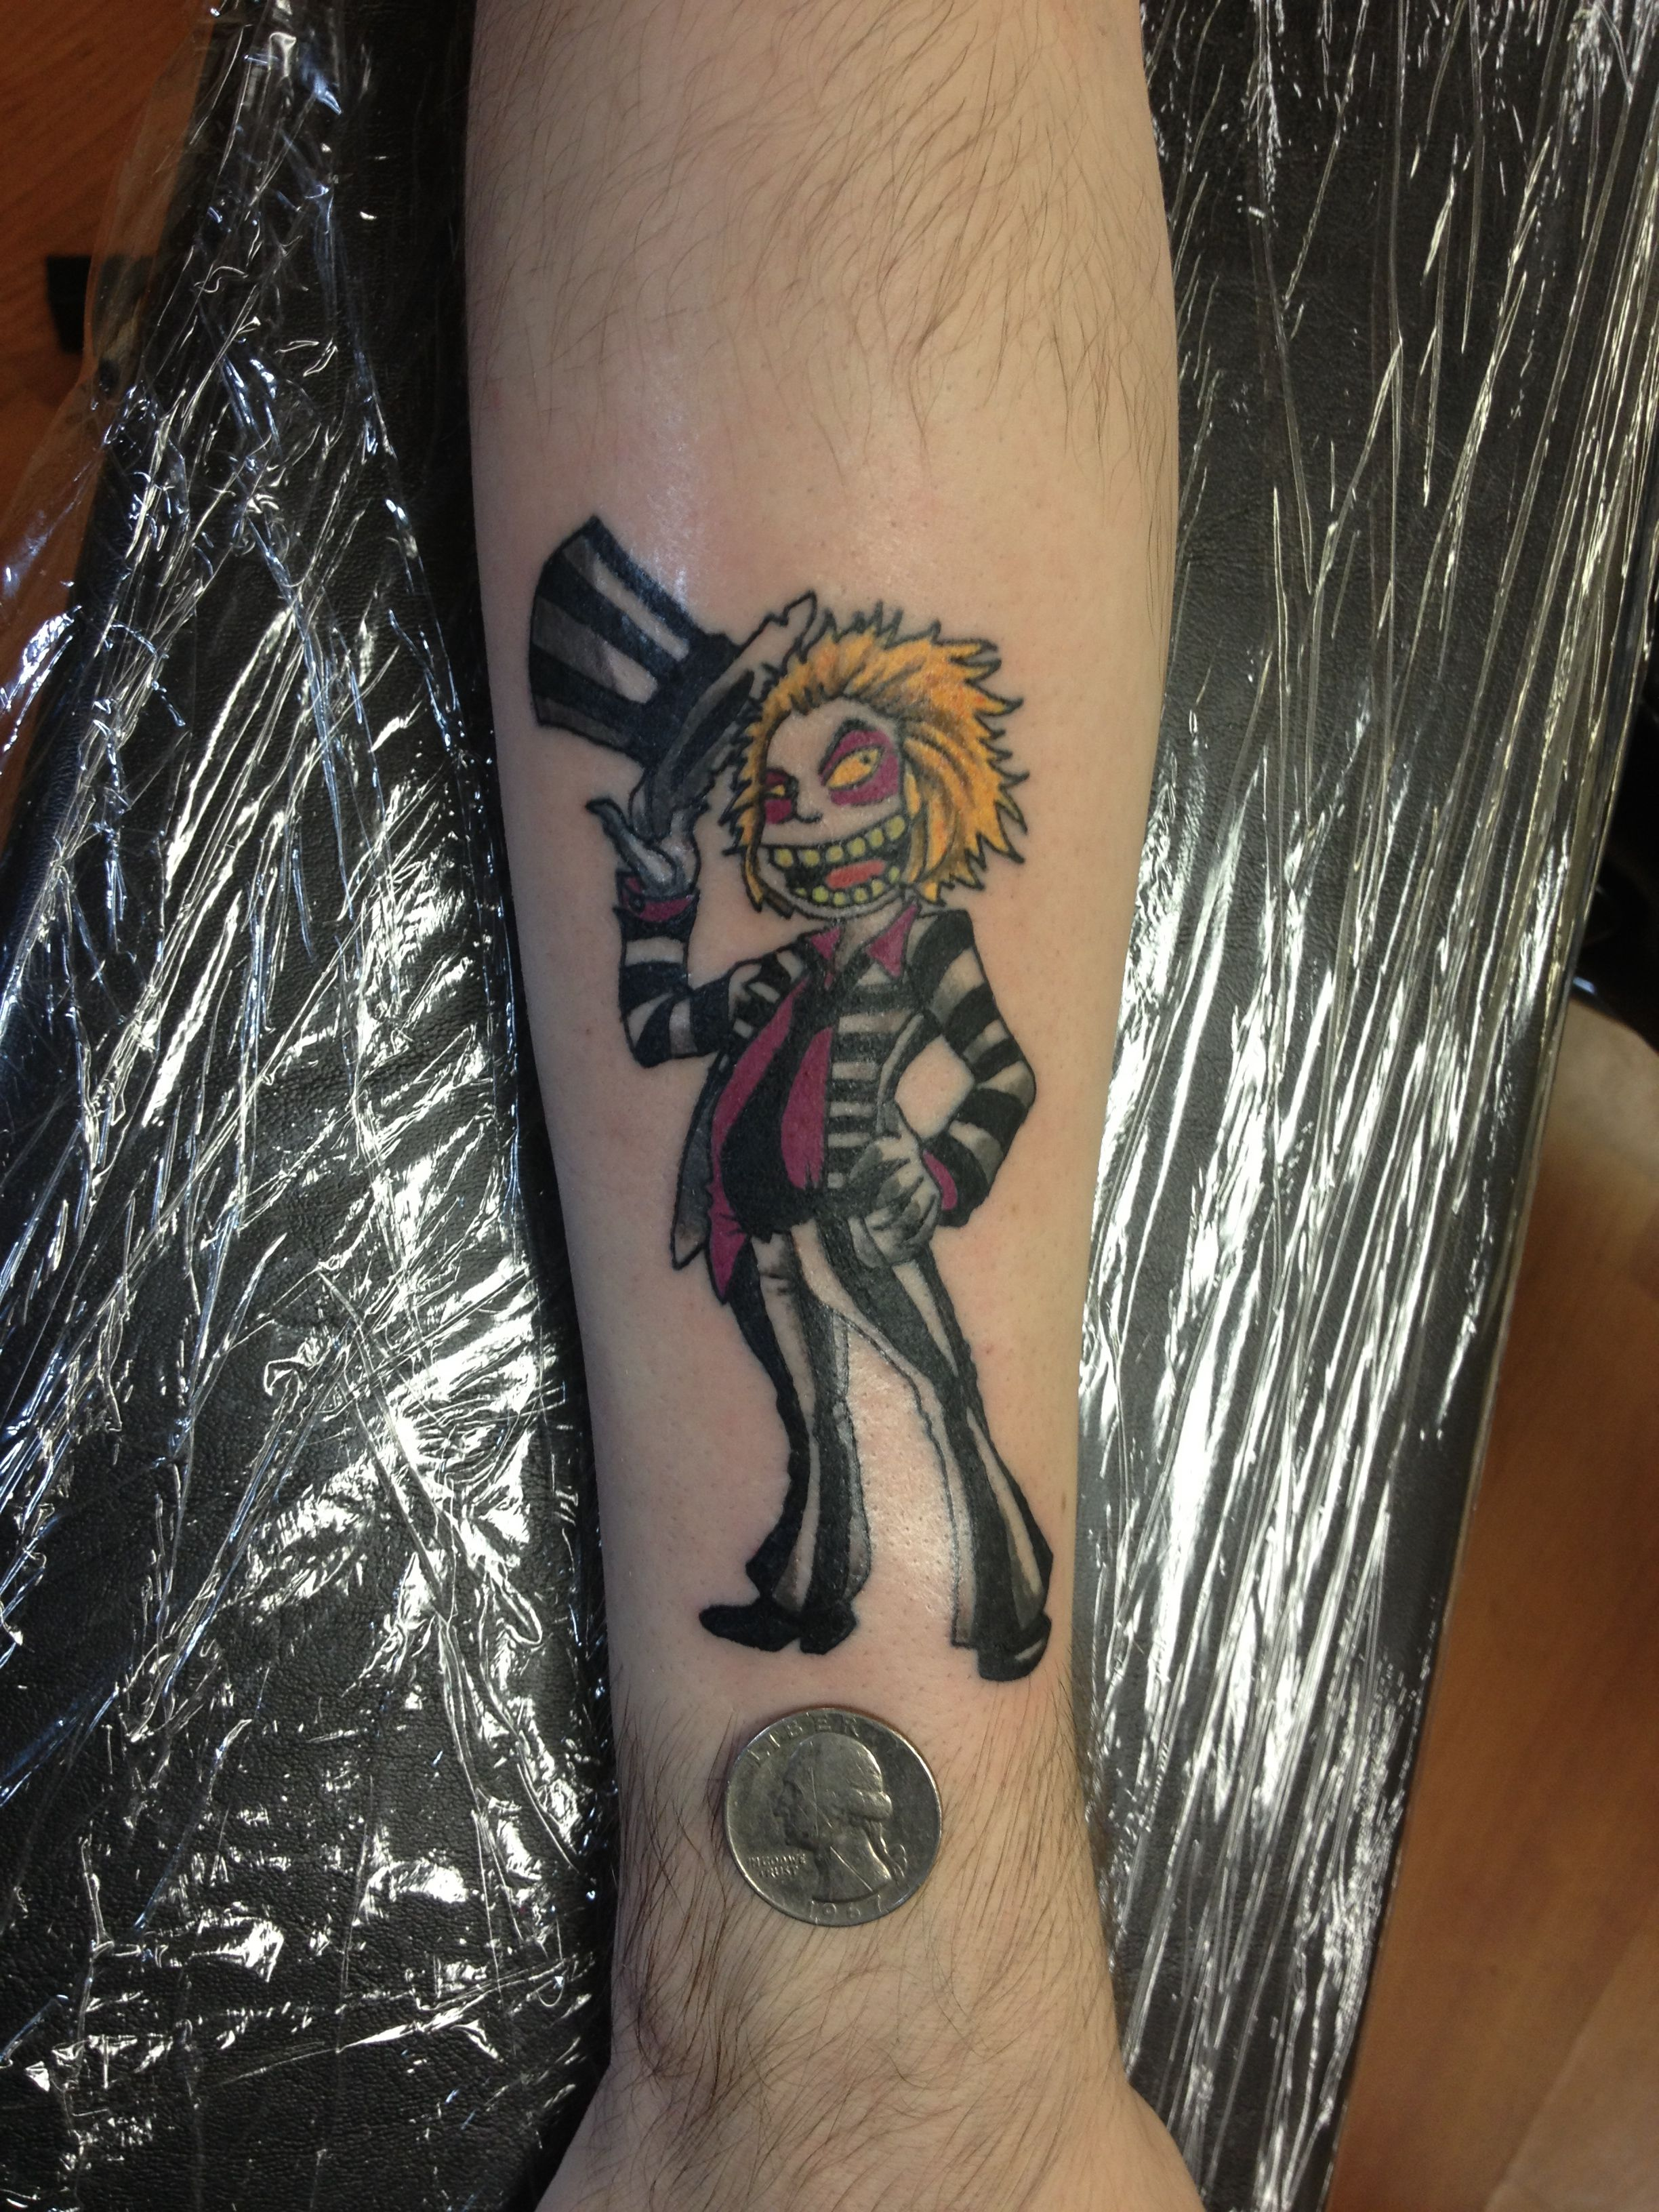 Pin On Tattoos I Have Done